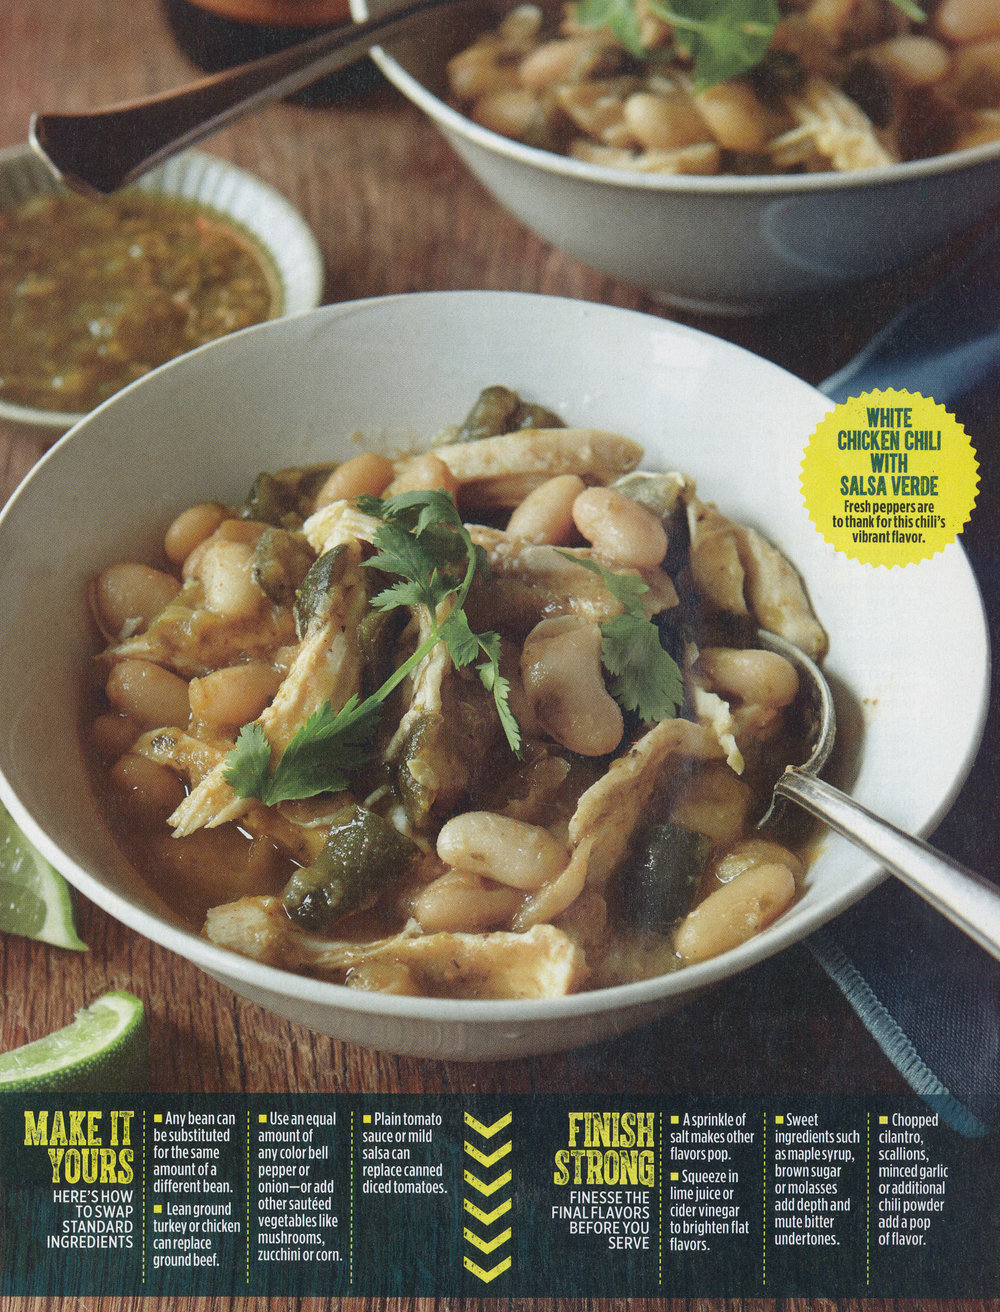 white chicken chili with salsa verde.jpg